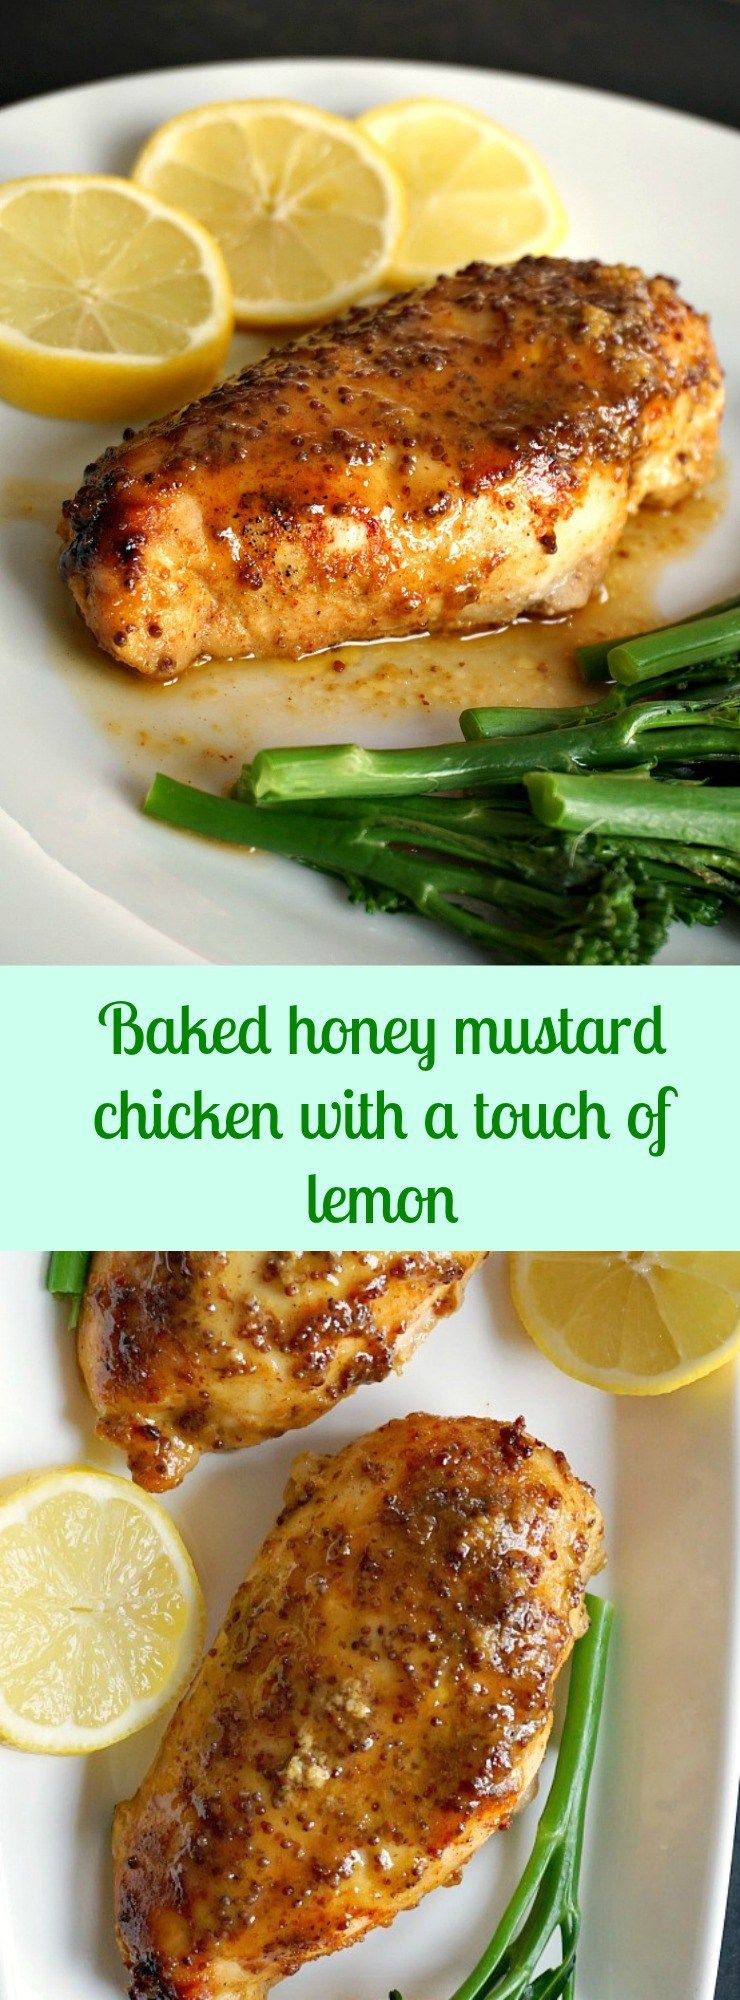 baked honey mustard chicken with a touch of lemon an amzing meal